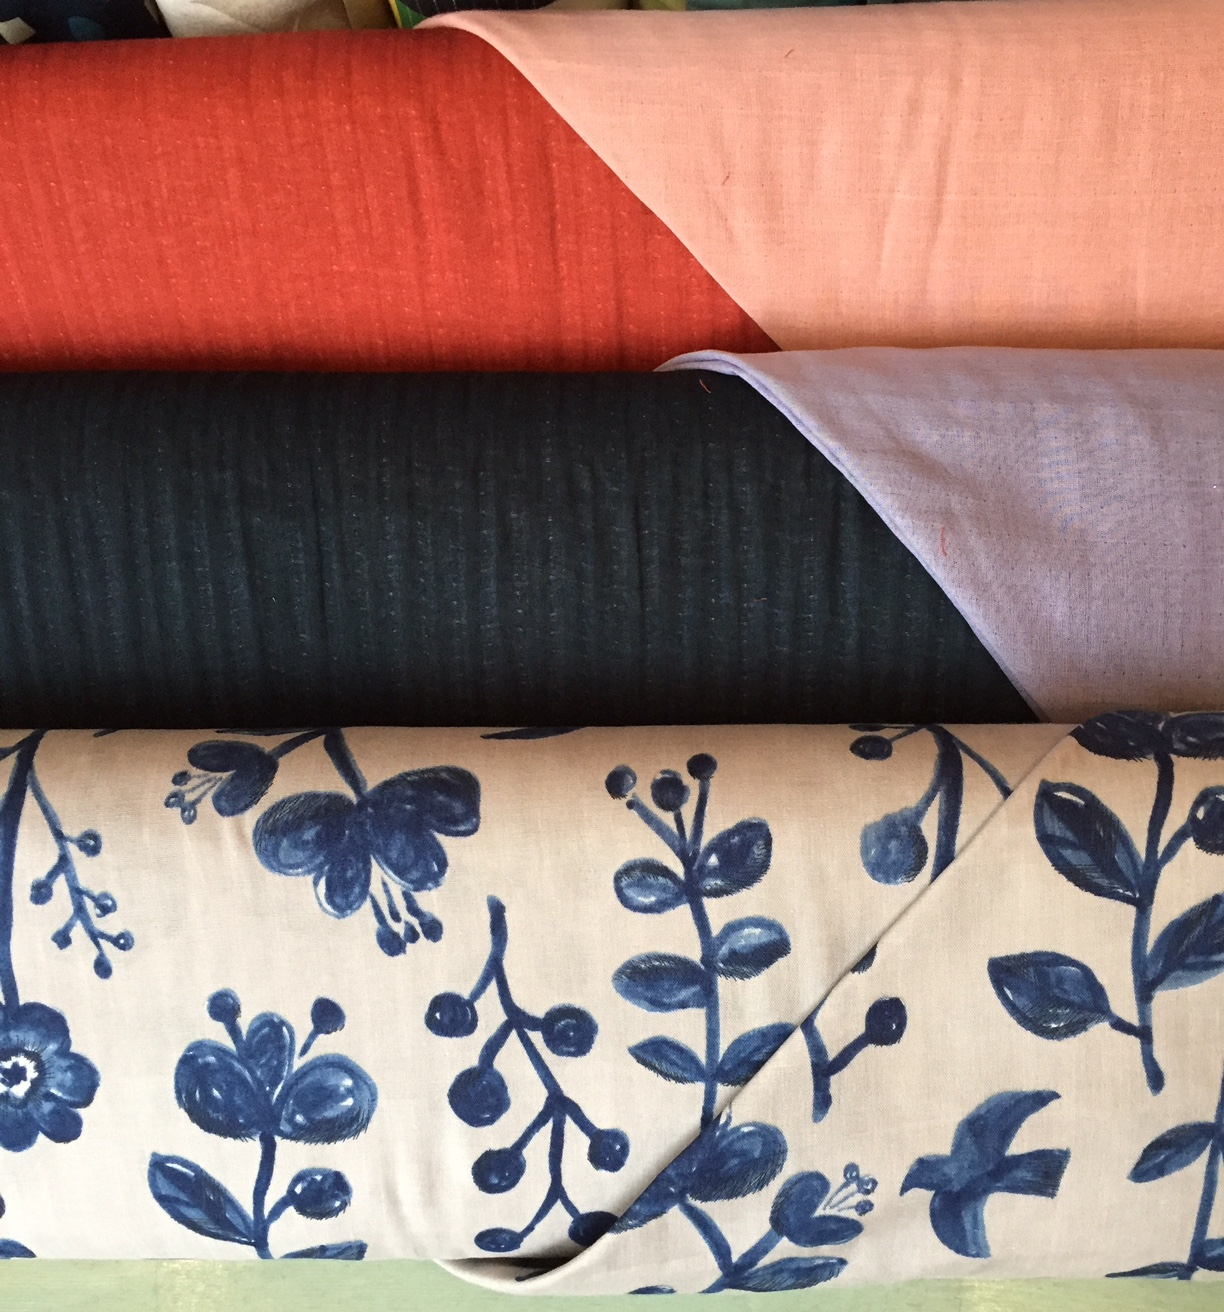 Lovely double sided double gauze and navy print double gauze from Japan.